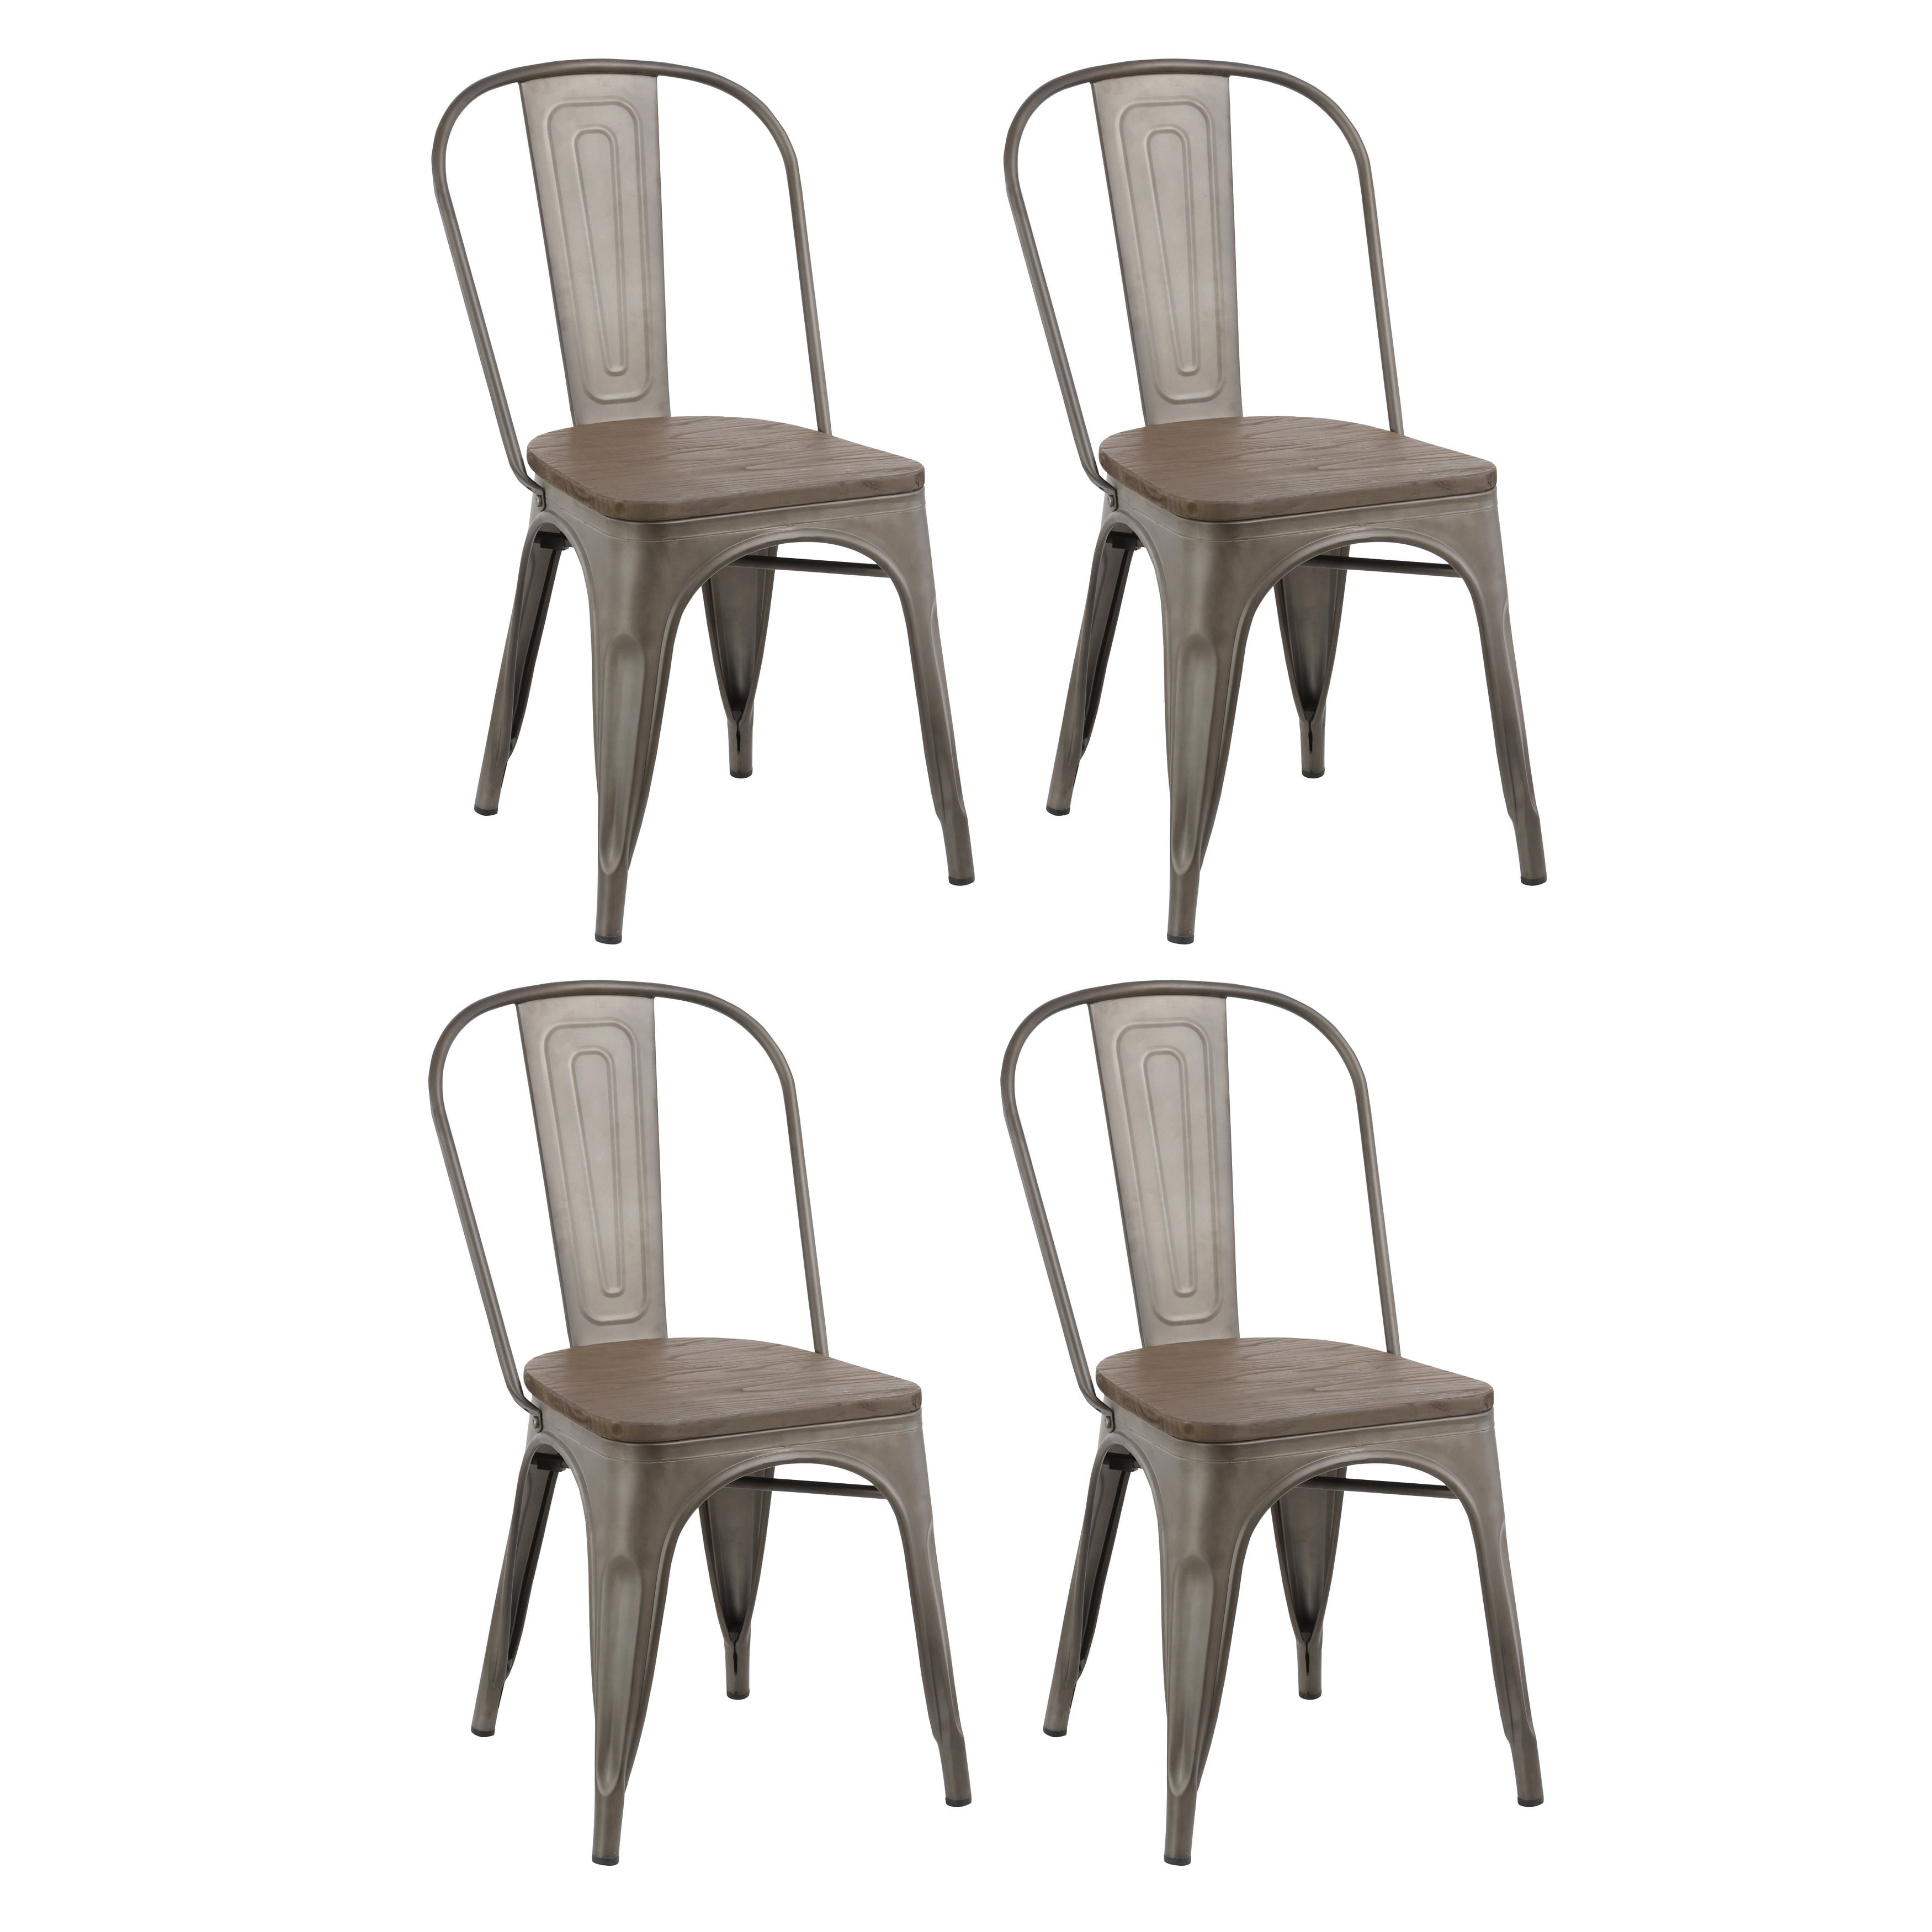 Shop Industrial Stackable Steel Antique Rustic Cafe Dining Chair Set